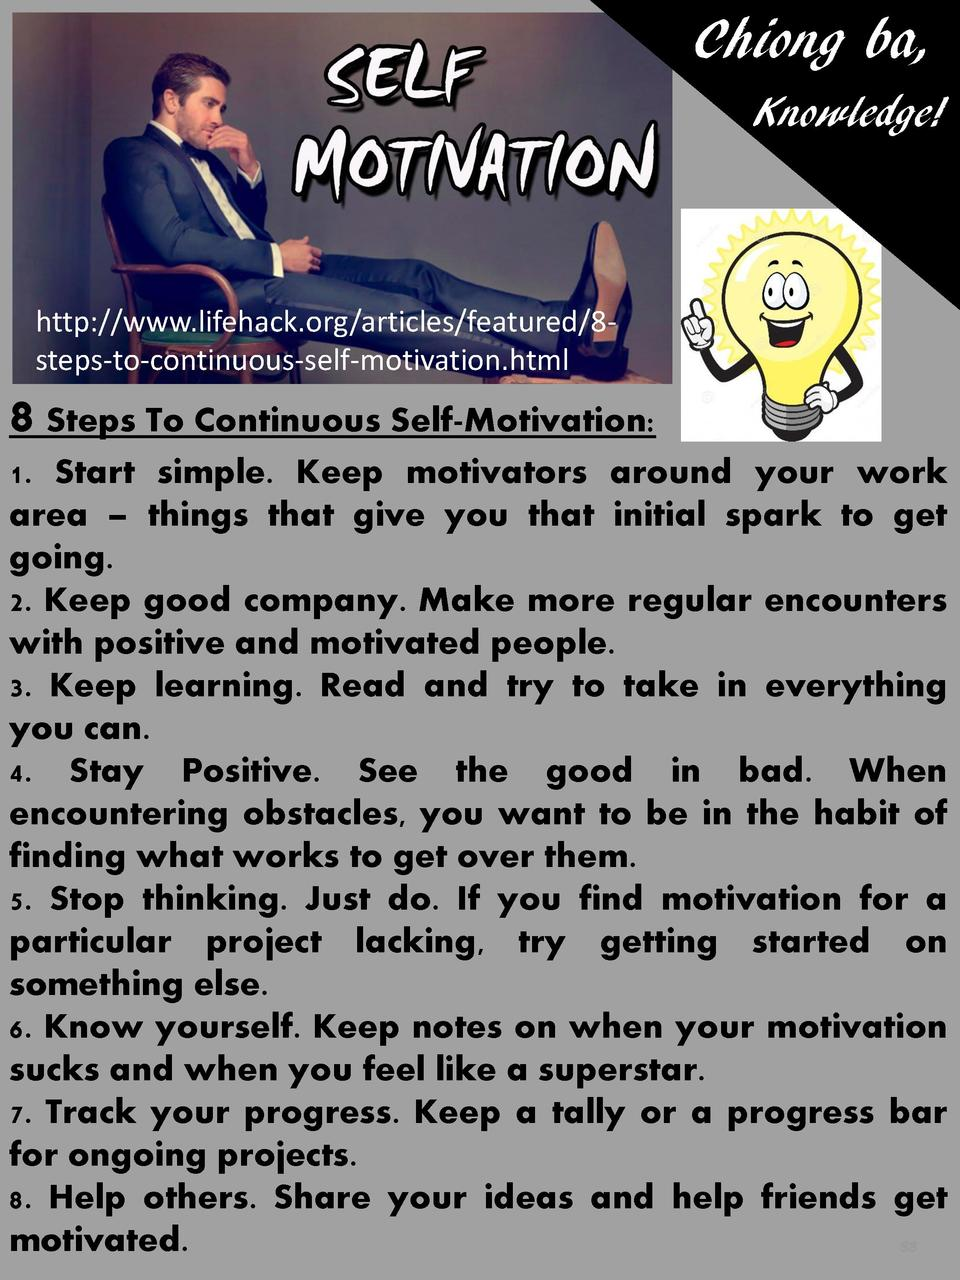 Chiong ba, Knowledge   http   www.lifehack.org articles featured 8steps-to-continuous-self-motivation.html  8 Steps To Con...